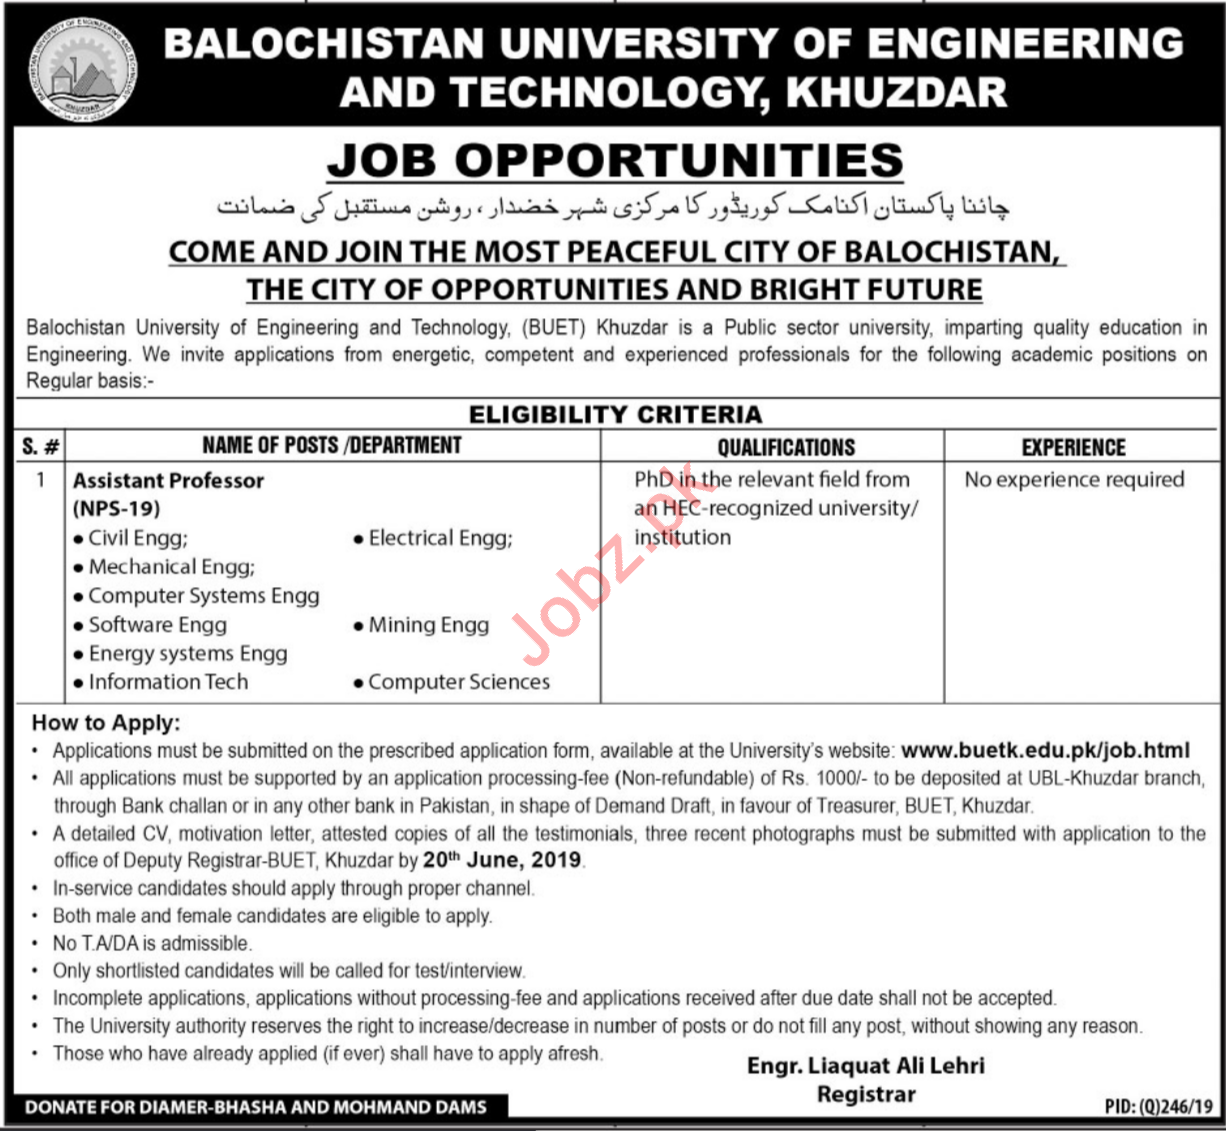 Balochistan University of Engineering and Technology Jobs